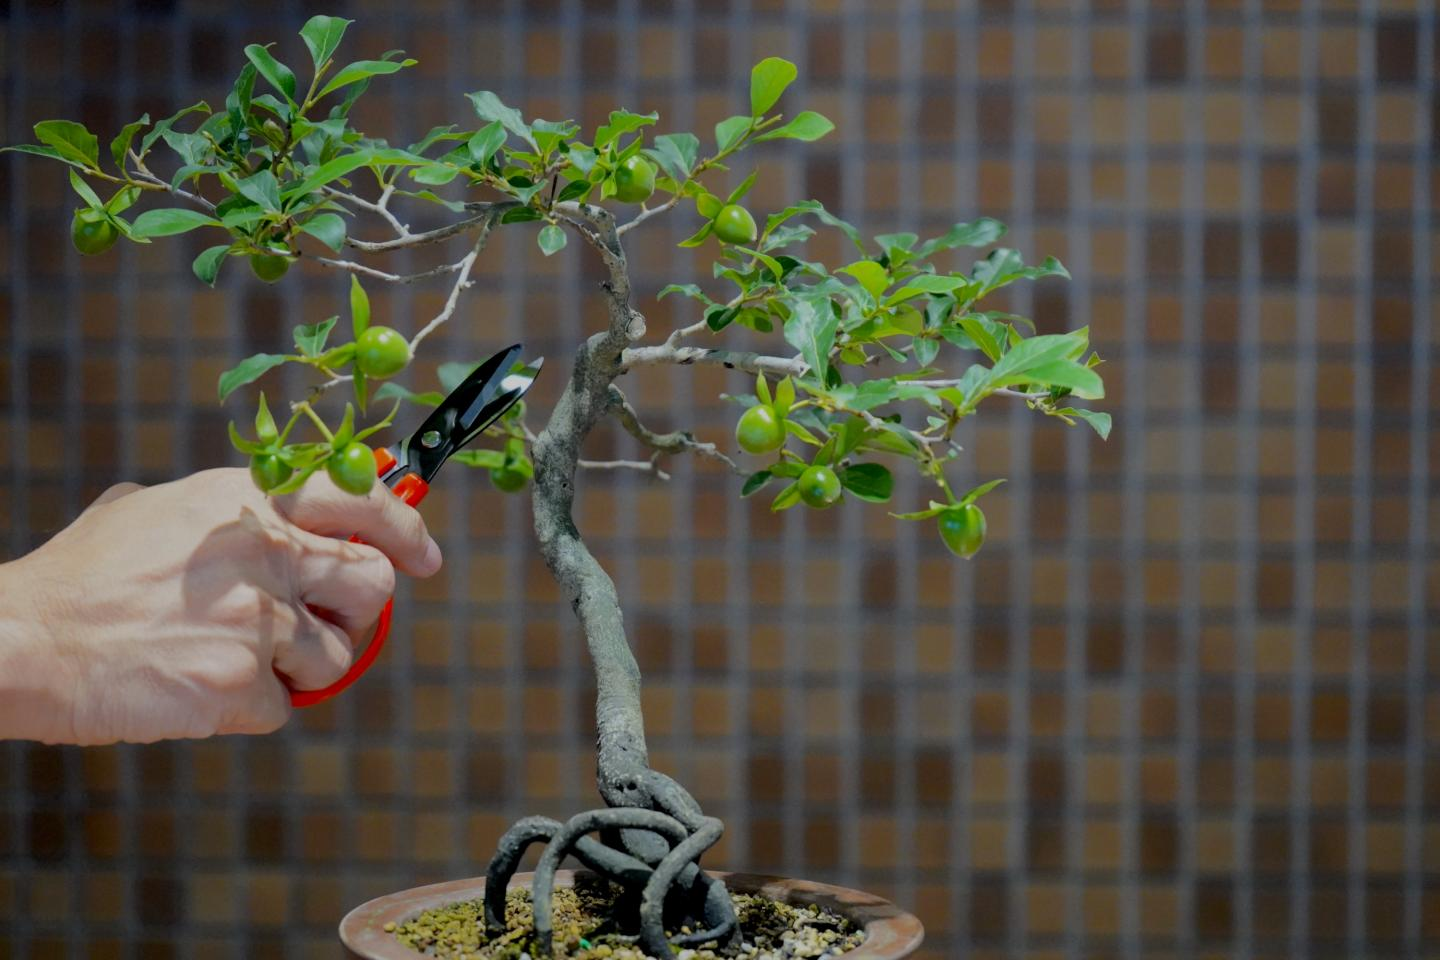 To prune or strengthen this branch